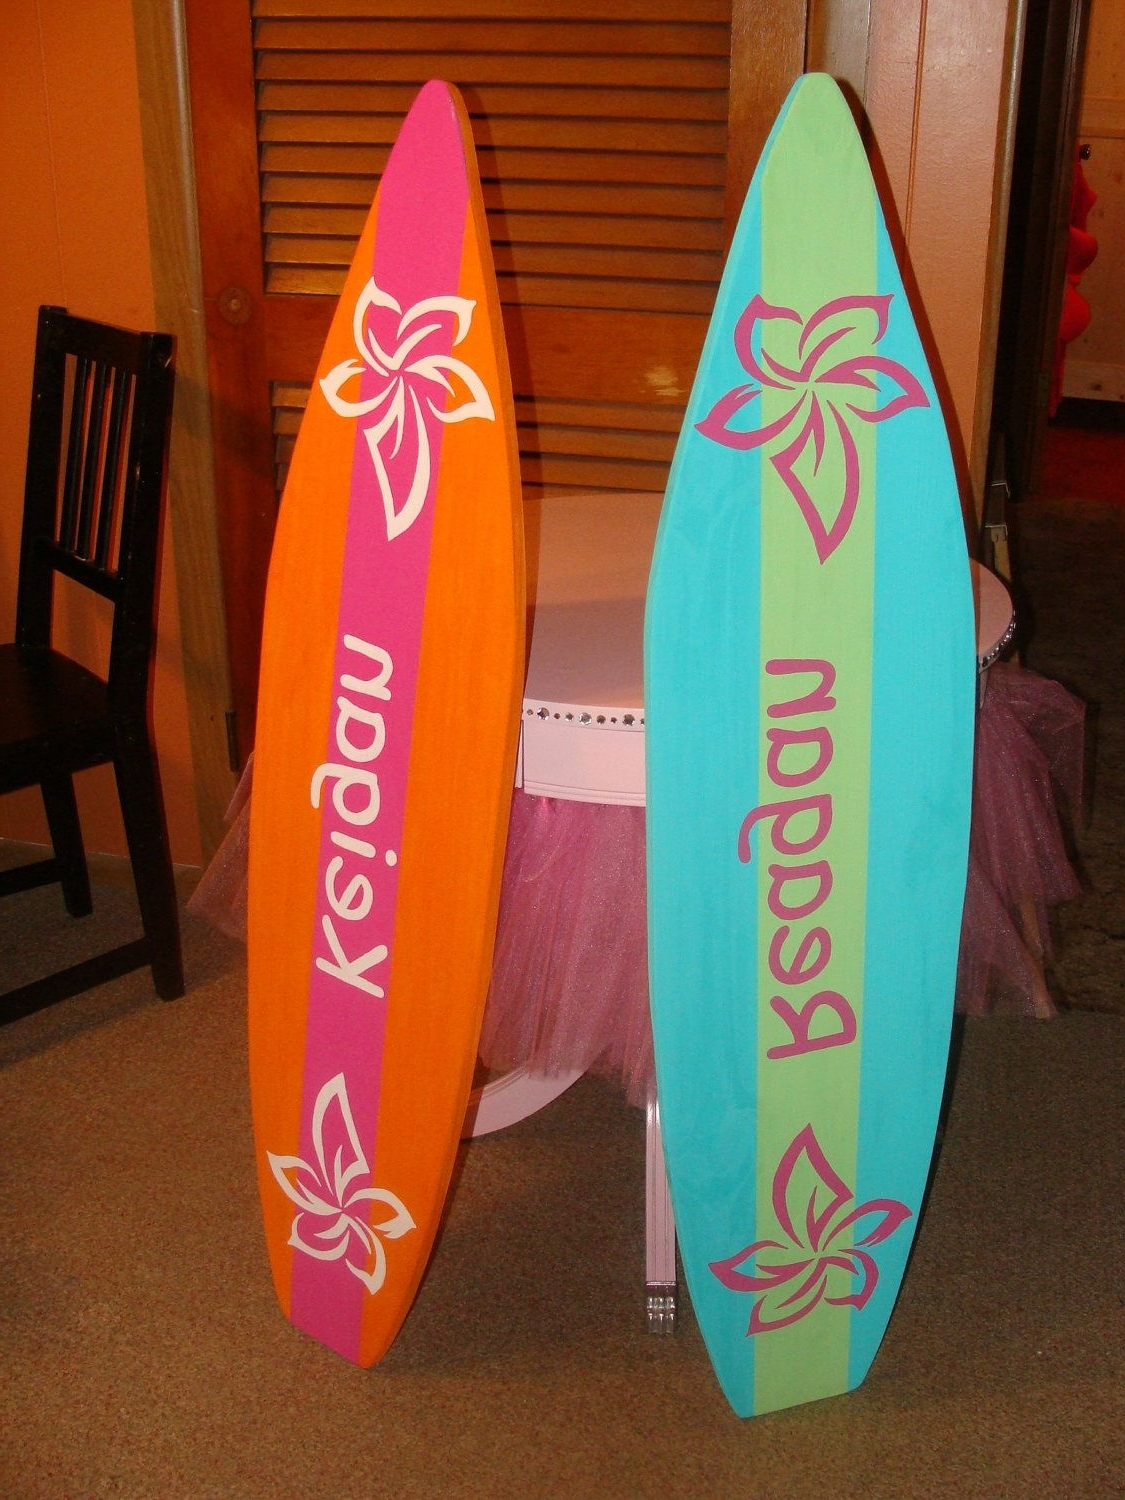 4 Foot Surfboard Wall Art, Beach Decor Wall Hanging (Will Throughout Most Current Surfboard Wall Art (View 15 of 15)